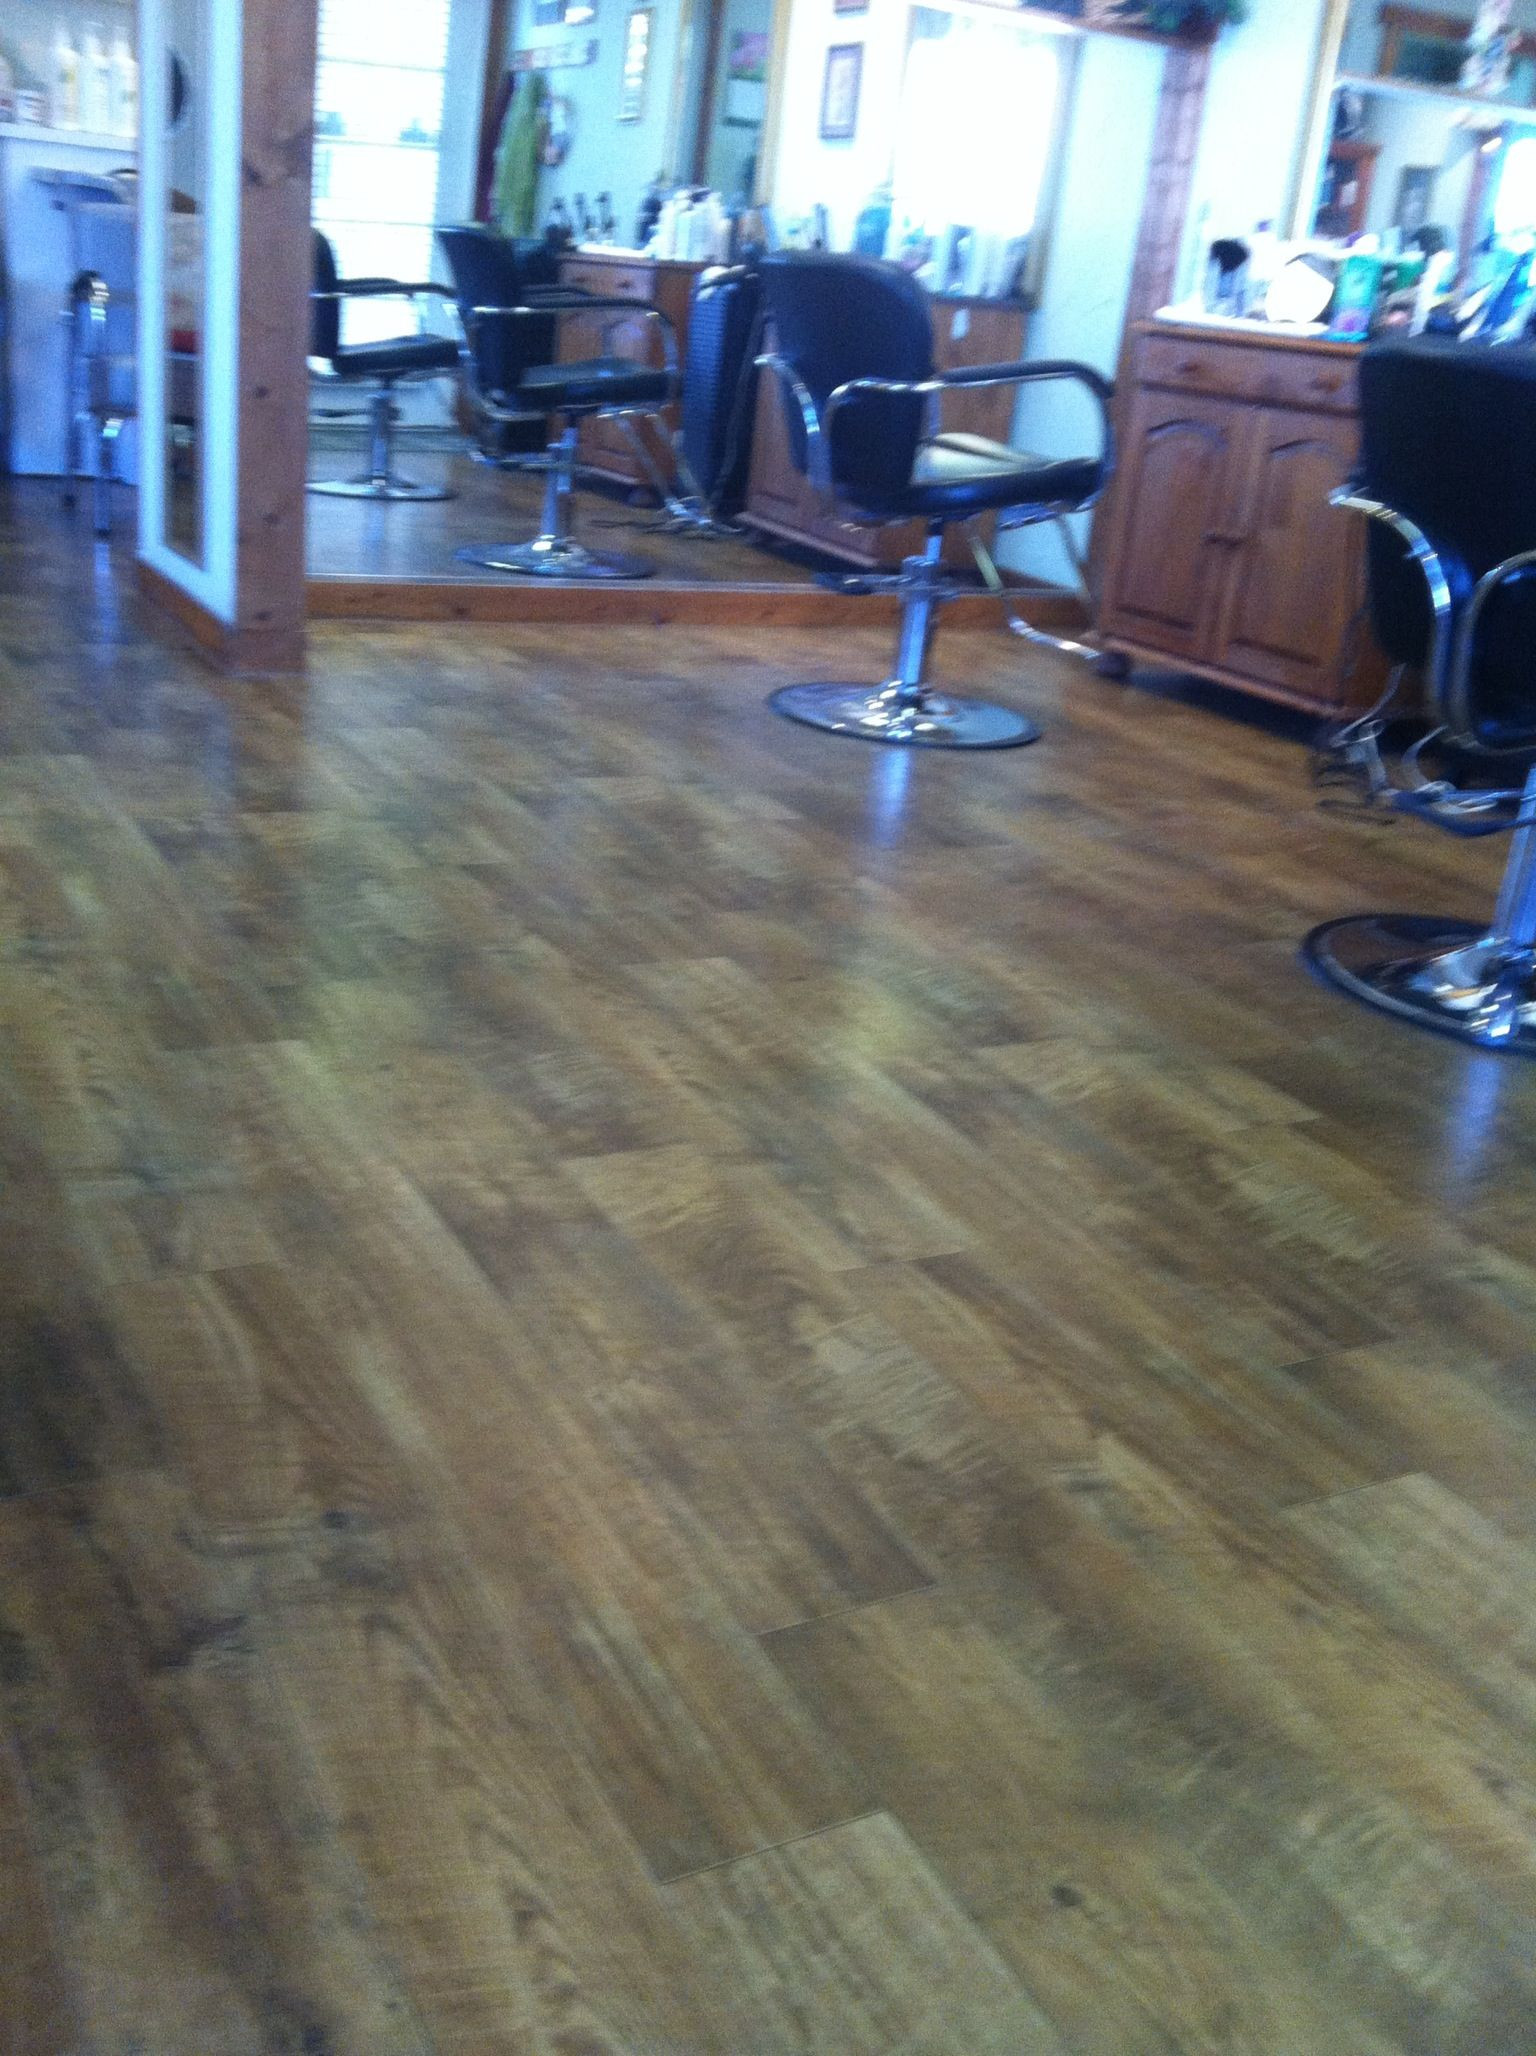 Wholesale Hardwood Flooring Dalton Georgia Of Dalton wholesale Floors Amazing Linoleum at My Hair Salon Looks and with Regard to Dalton wholesale Floors Amazing Linoleum at My Hair Salon Looks and Feels Like Wood